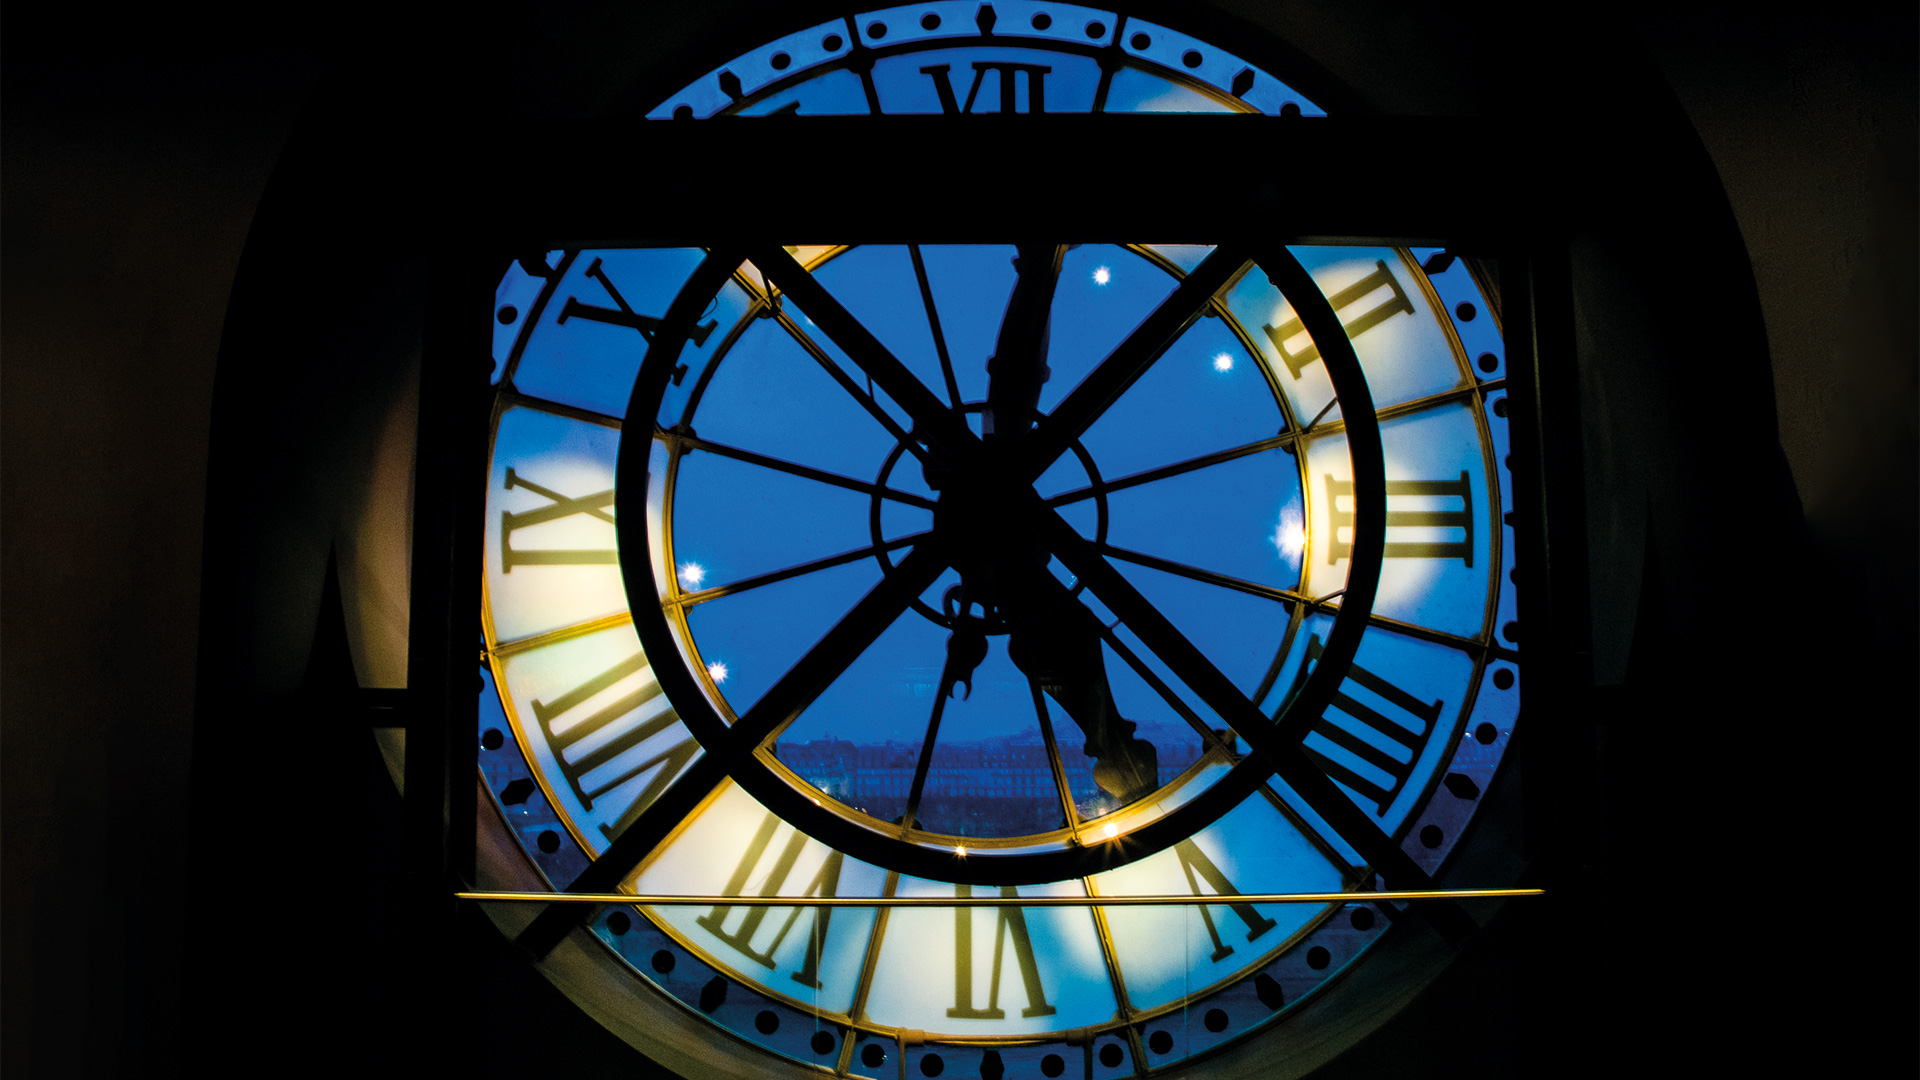 Technology Management Image: How Soon Is Now The Value Of Real-time Treasury Operations